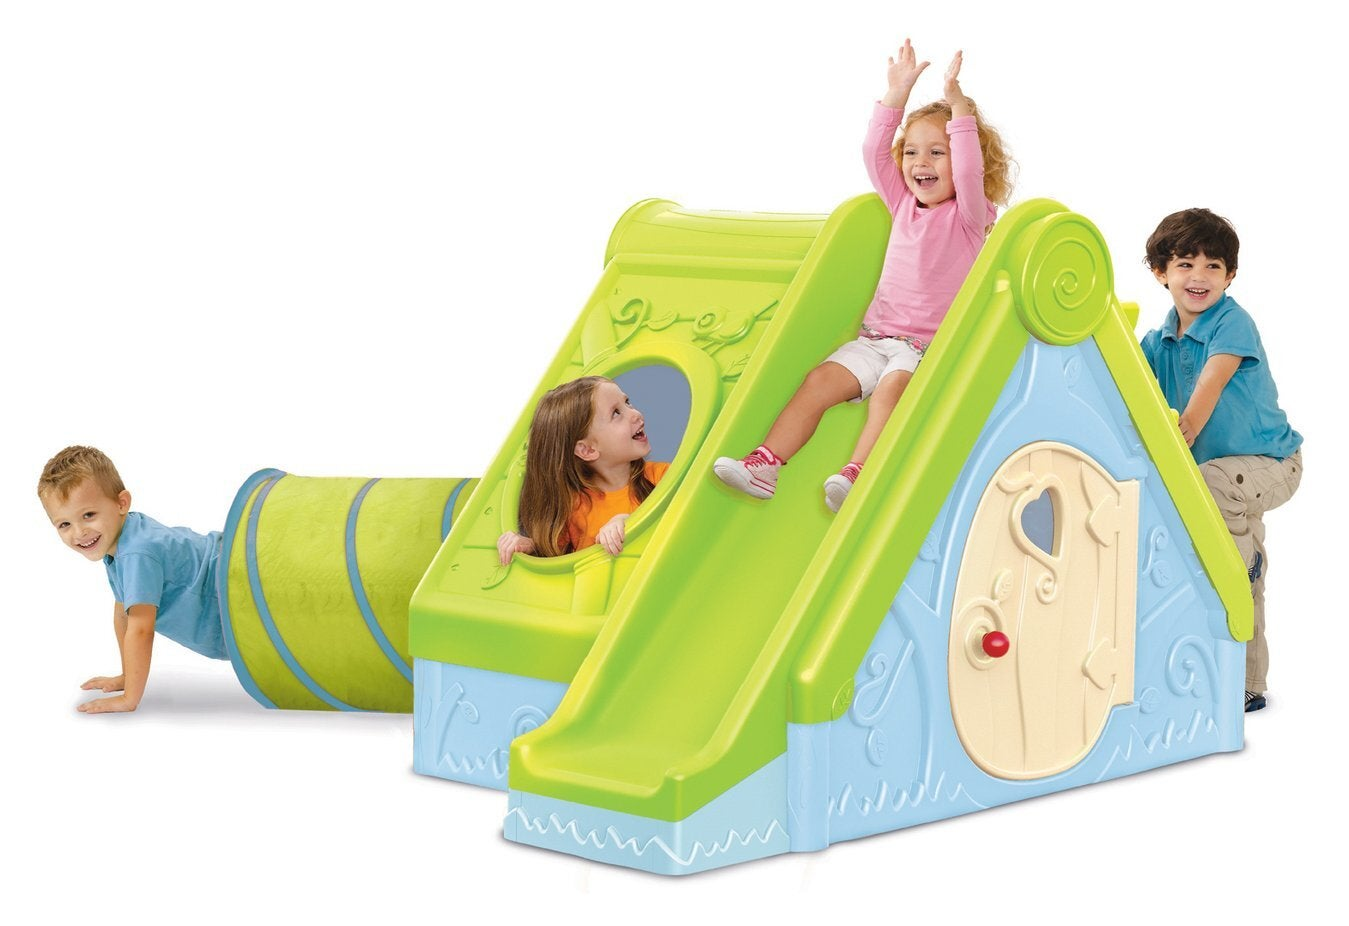 Keter Kids Outdoor Funtivity Cubby Playhouse